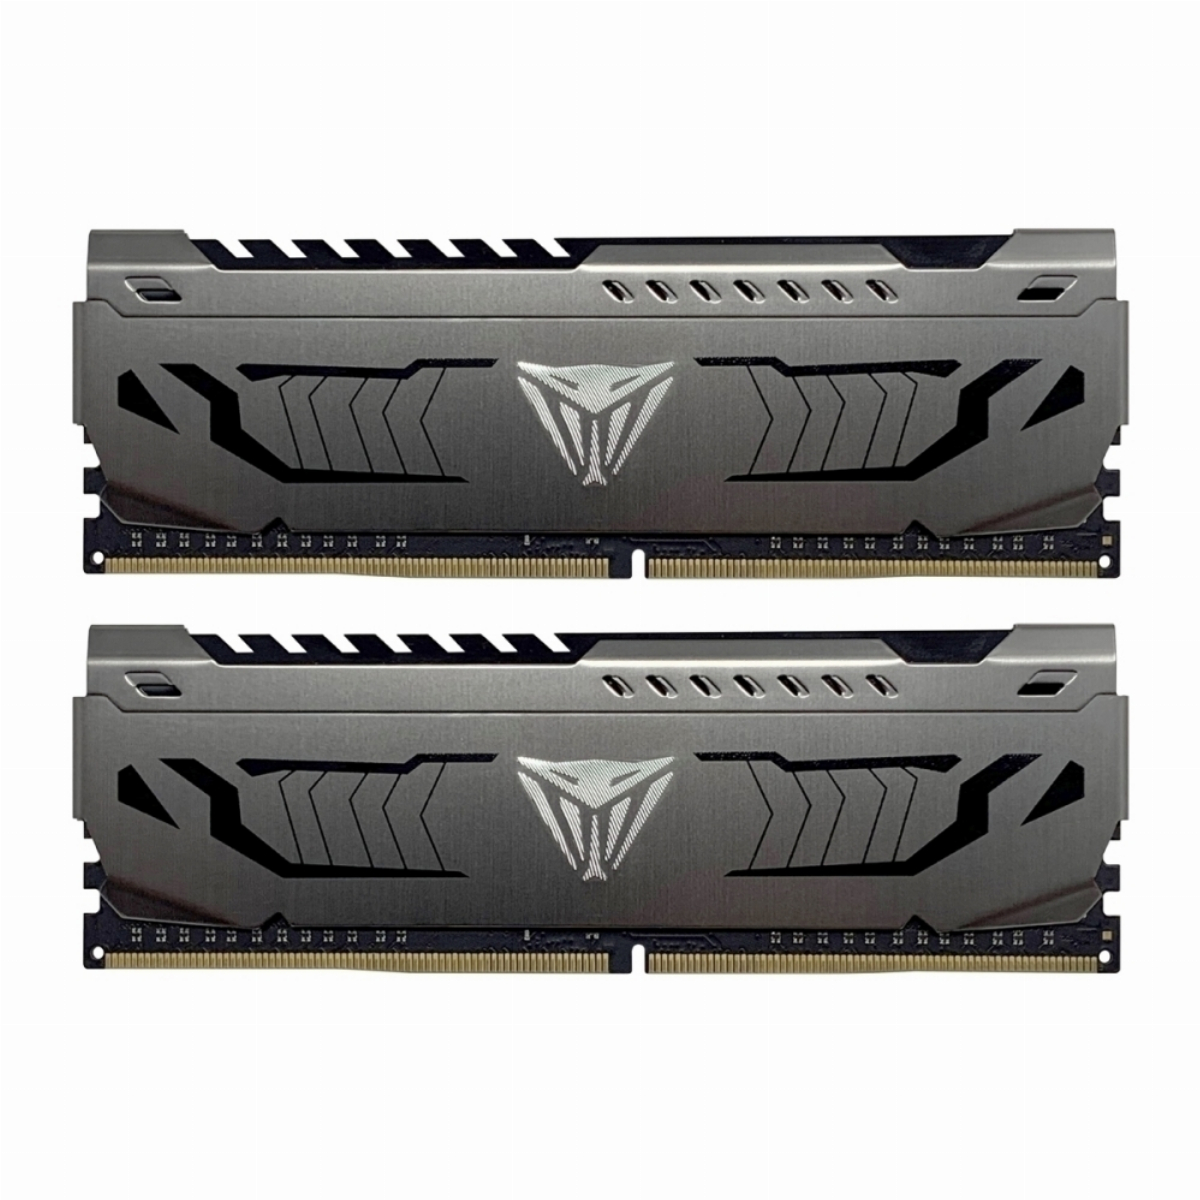 Памет Patriot Viper Steel 16GB (2x8GB) 3000Mhz DDR4 CL15